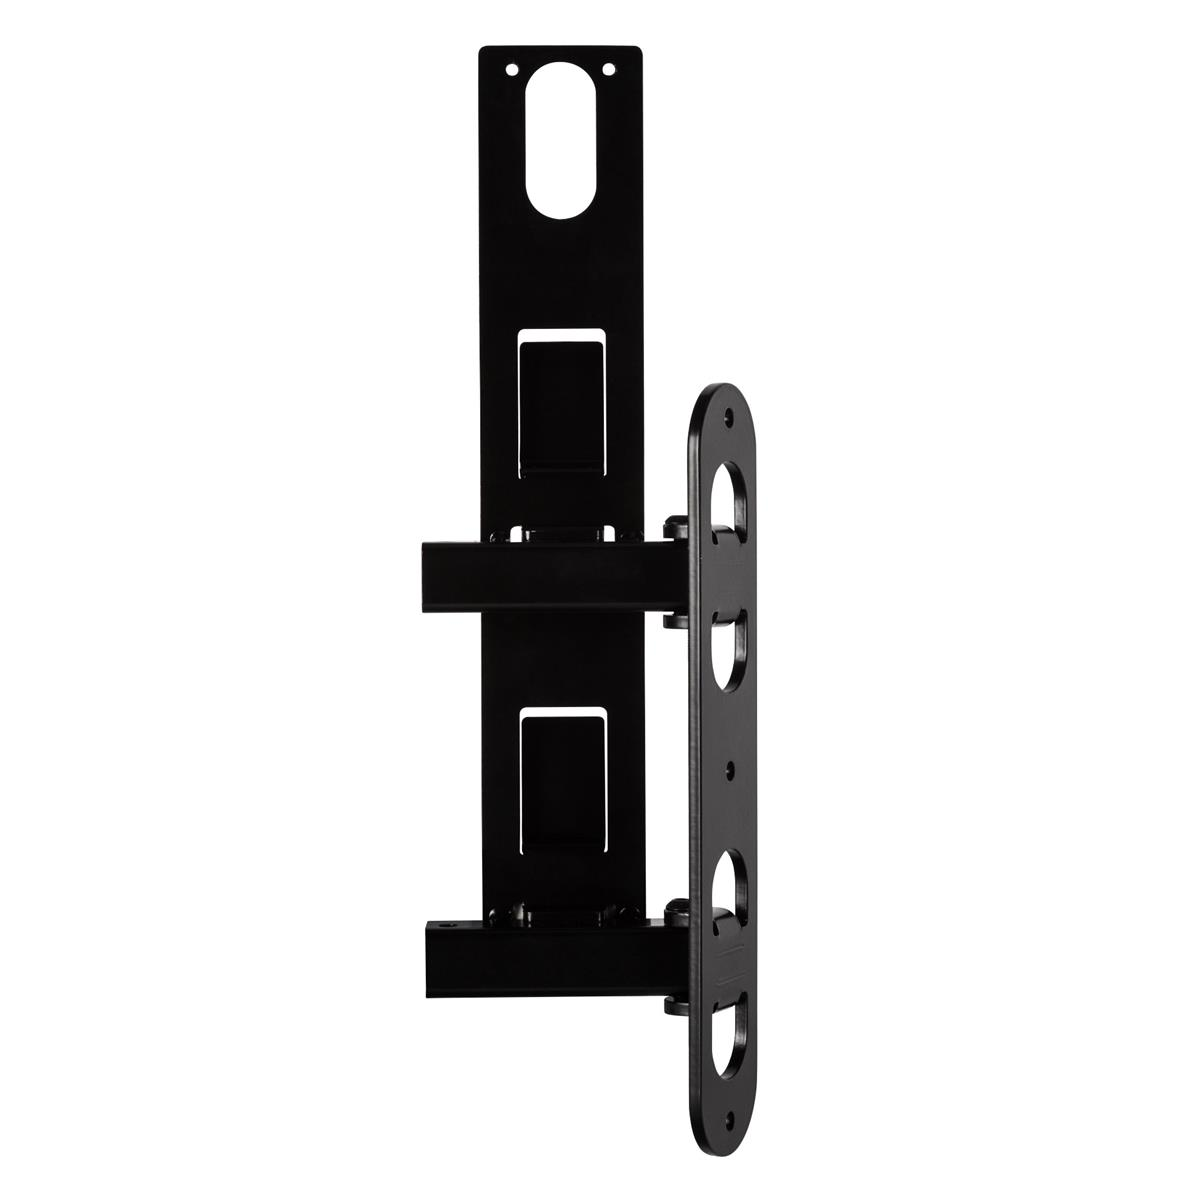 RCF SWM-BR VSA II BLACK Swivel bracket for VSA II Black